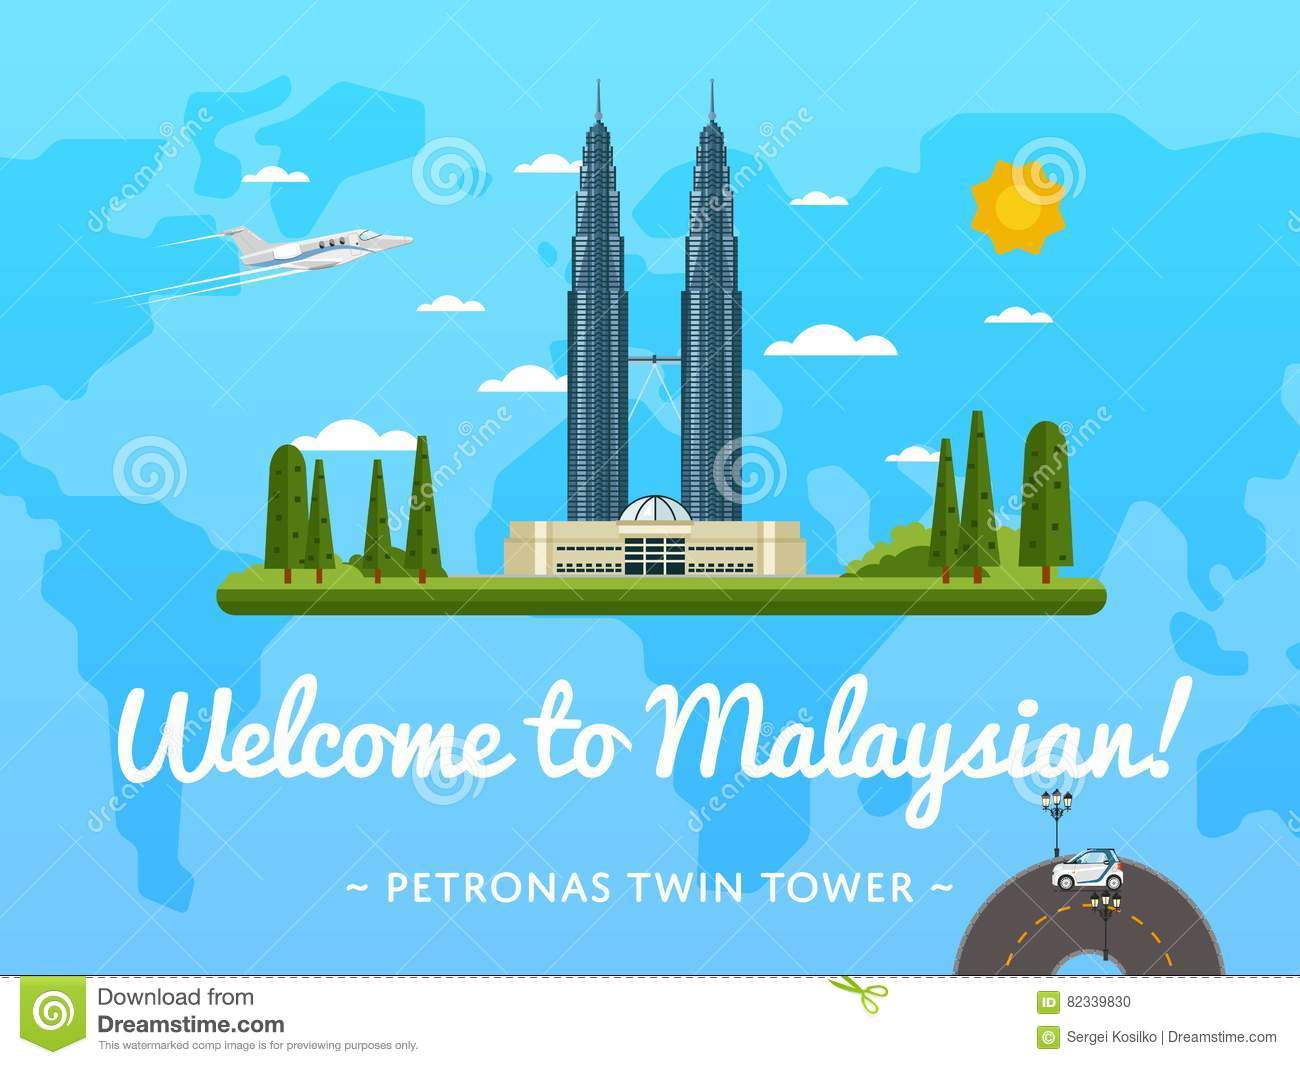 Essay welcome to malaysian